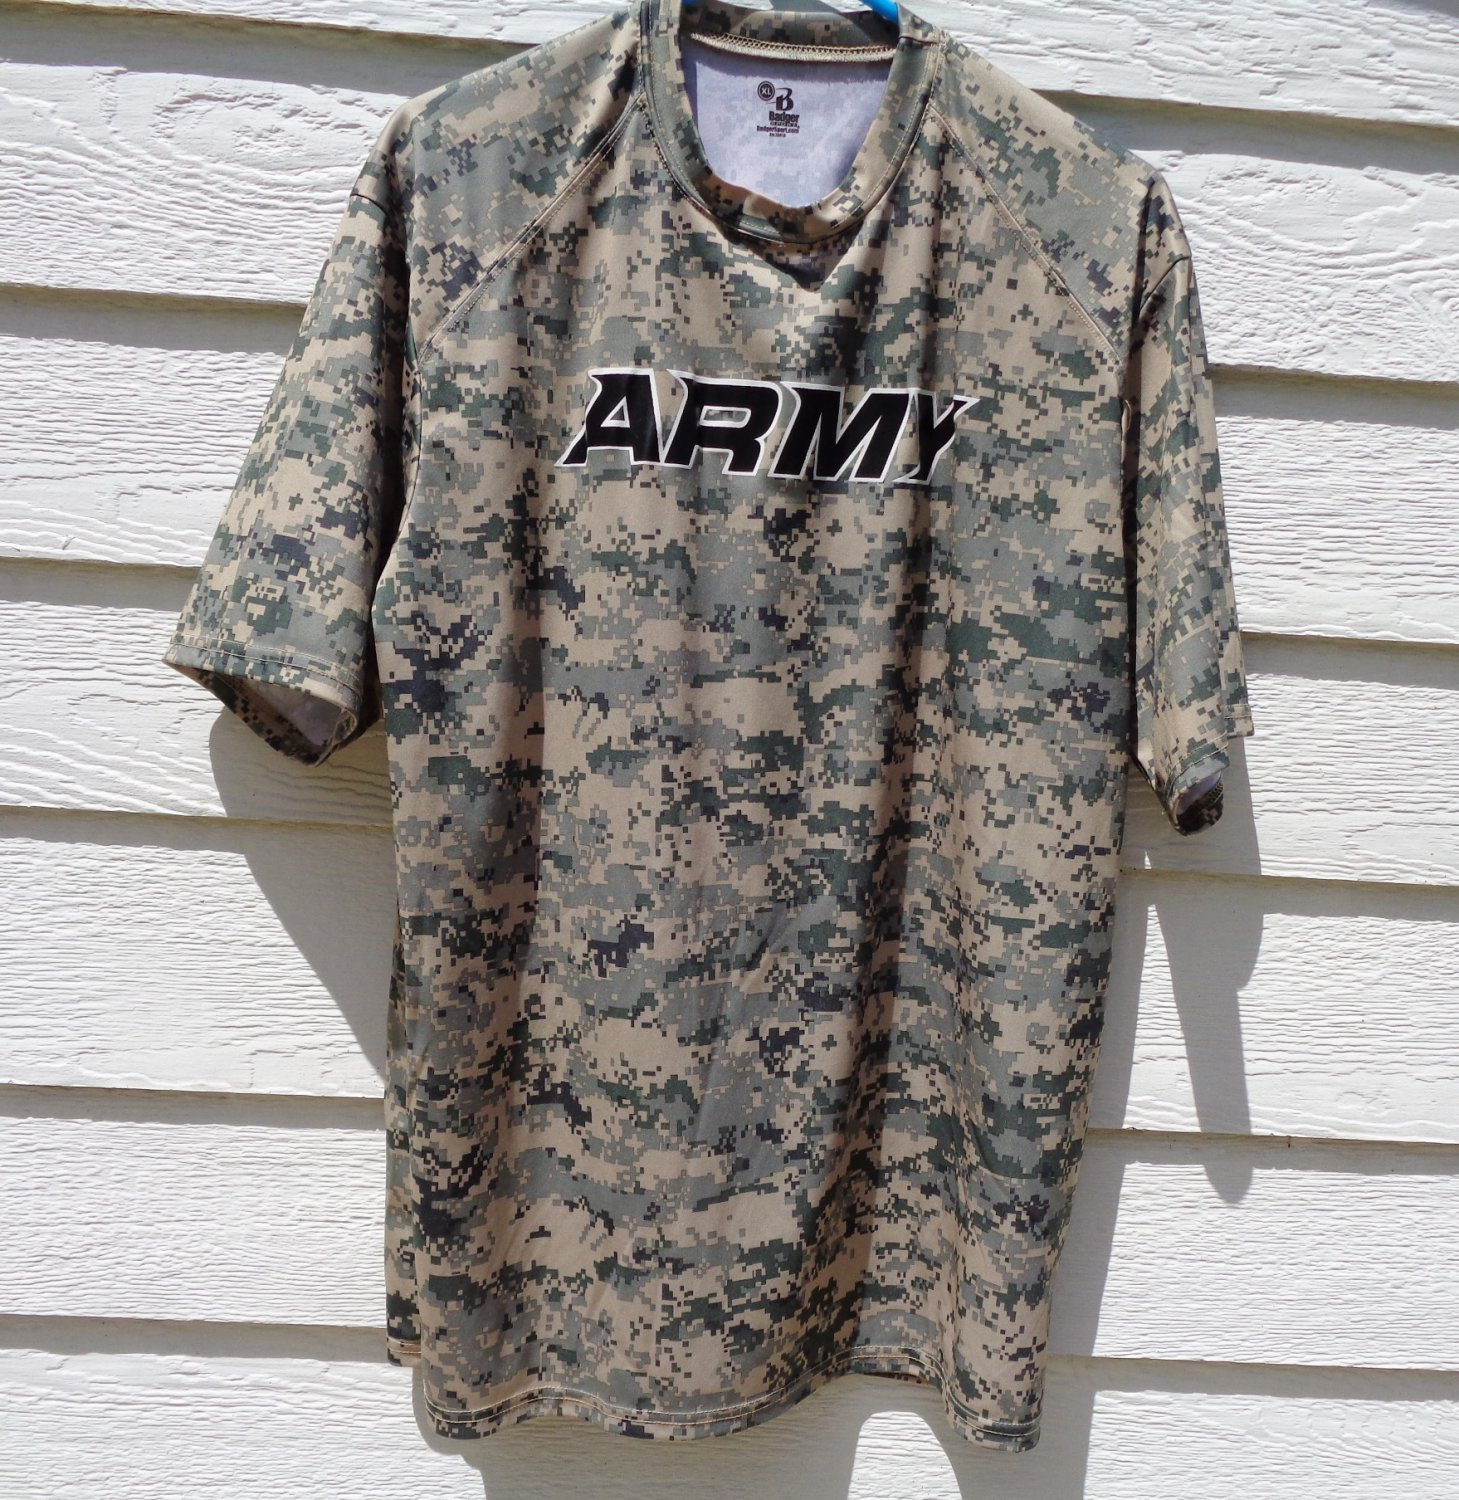 Badger Sport Military Army Print Shirt XL 46 Chest Men's Athletic Top